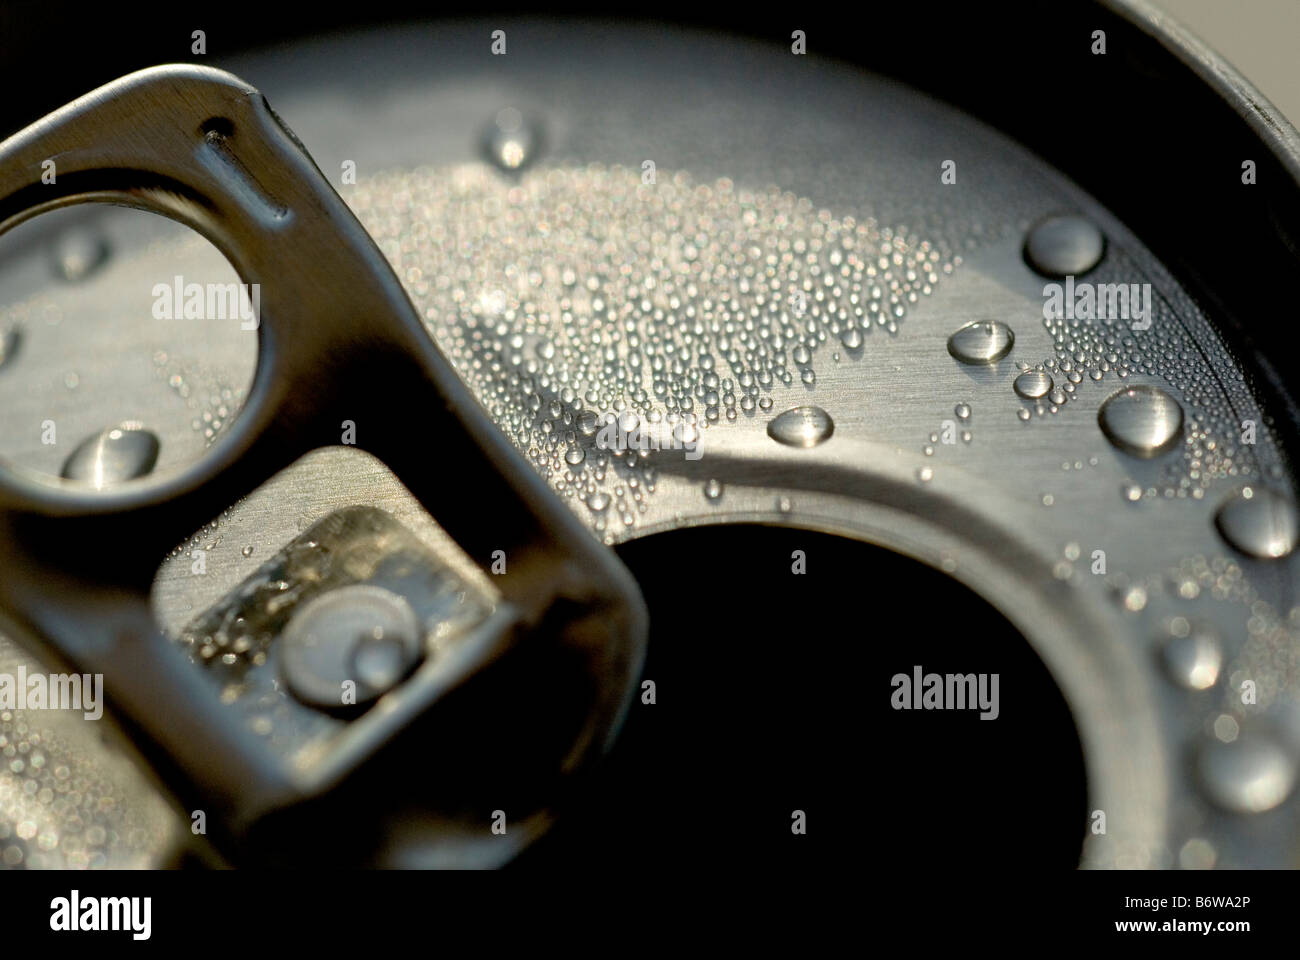 SHOT OF A DRINKS CAN SHOWING A CLOSE UP DETAIL OF THE RING PULL AND MOISTURE DROPLETS - Stock Image